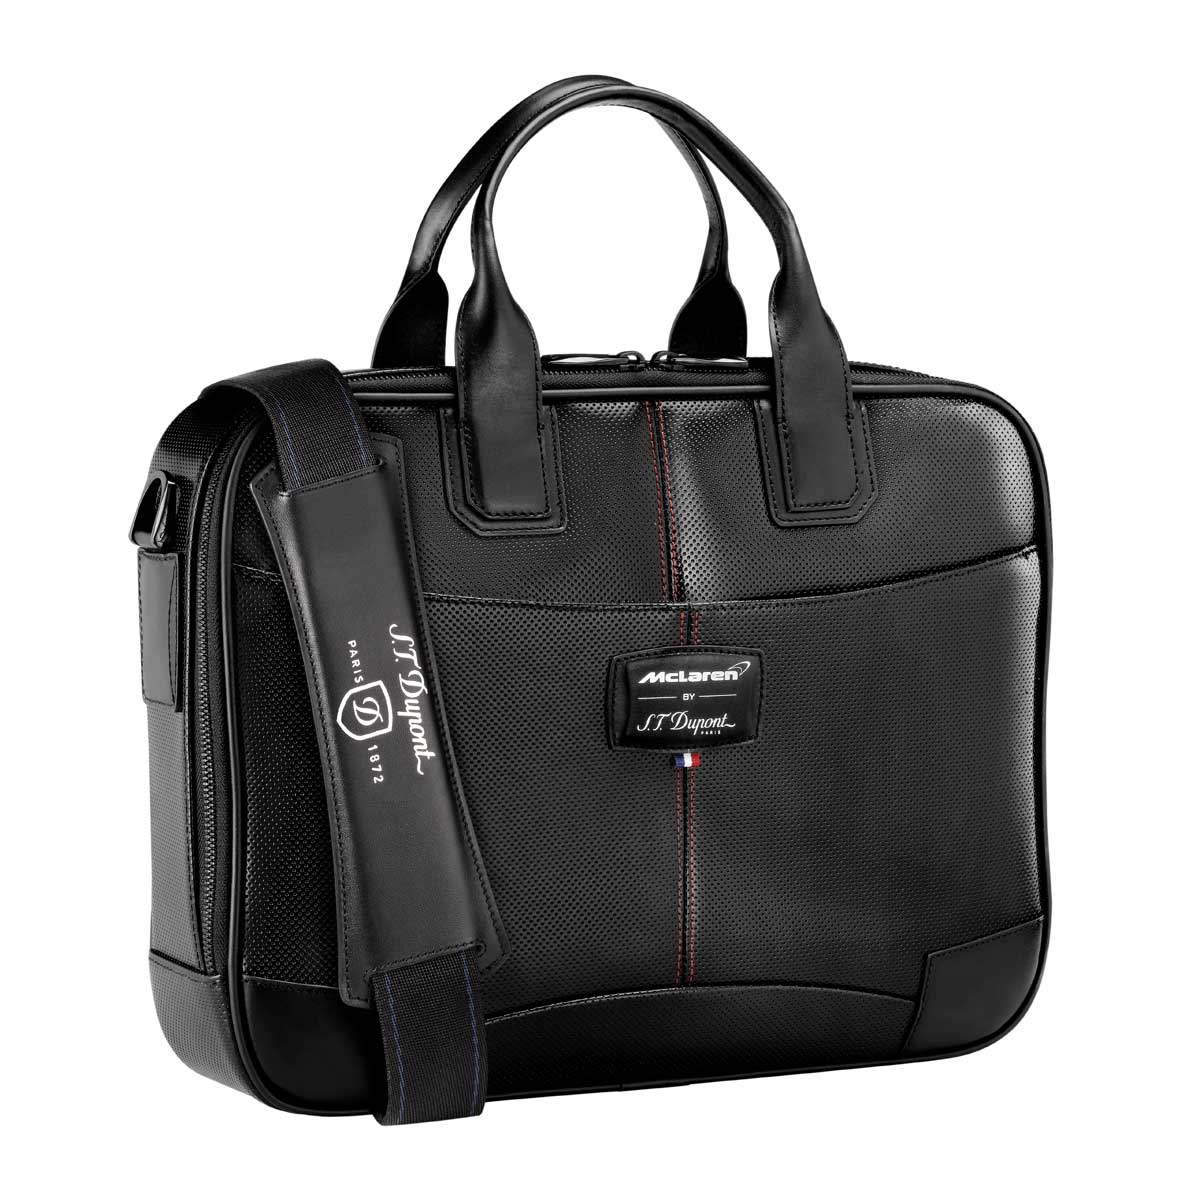 ST Dupont McLaren Laptop Bag & Document Holder - Perforated Leather - Limited Edition